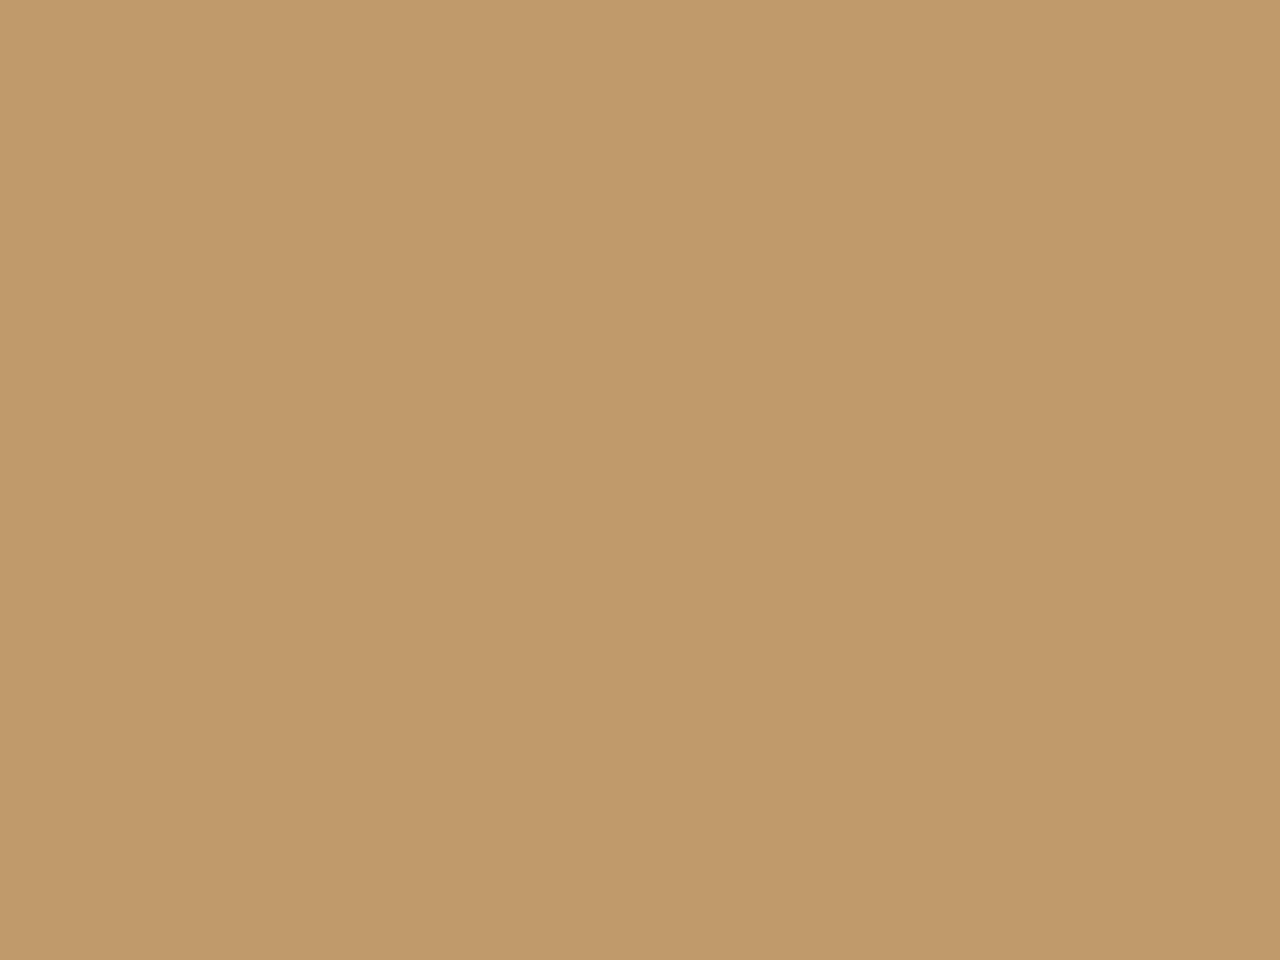 1280x960 Fallow Solid Color Background